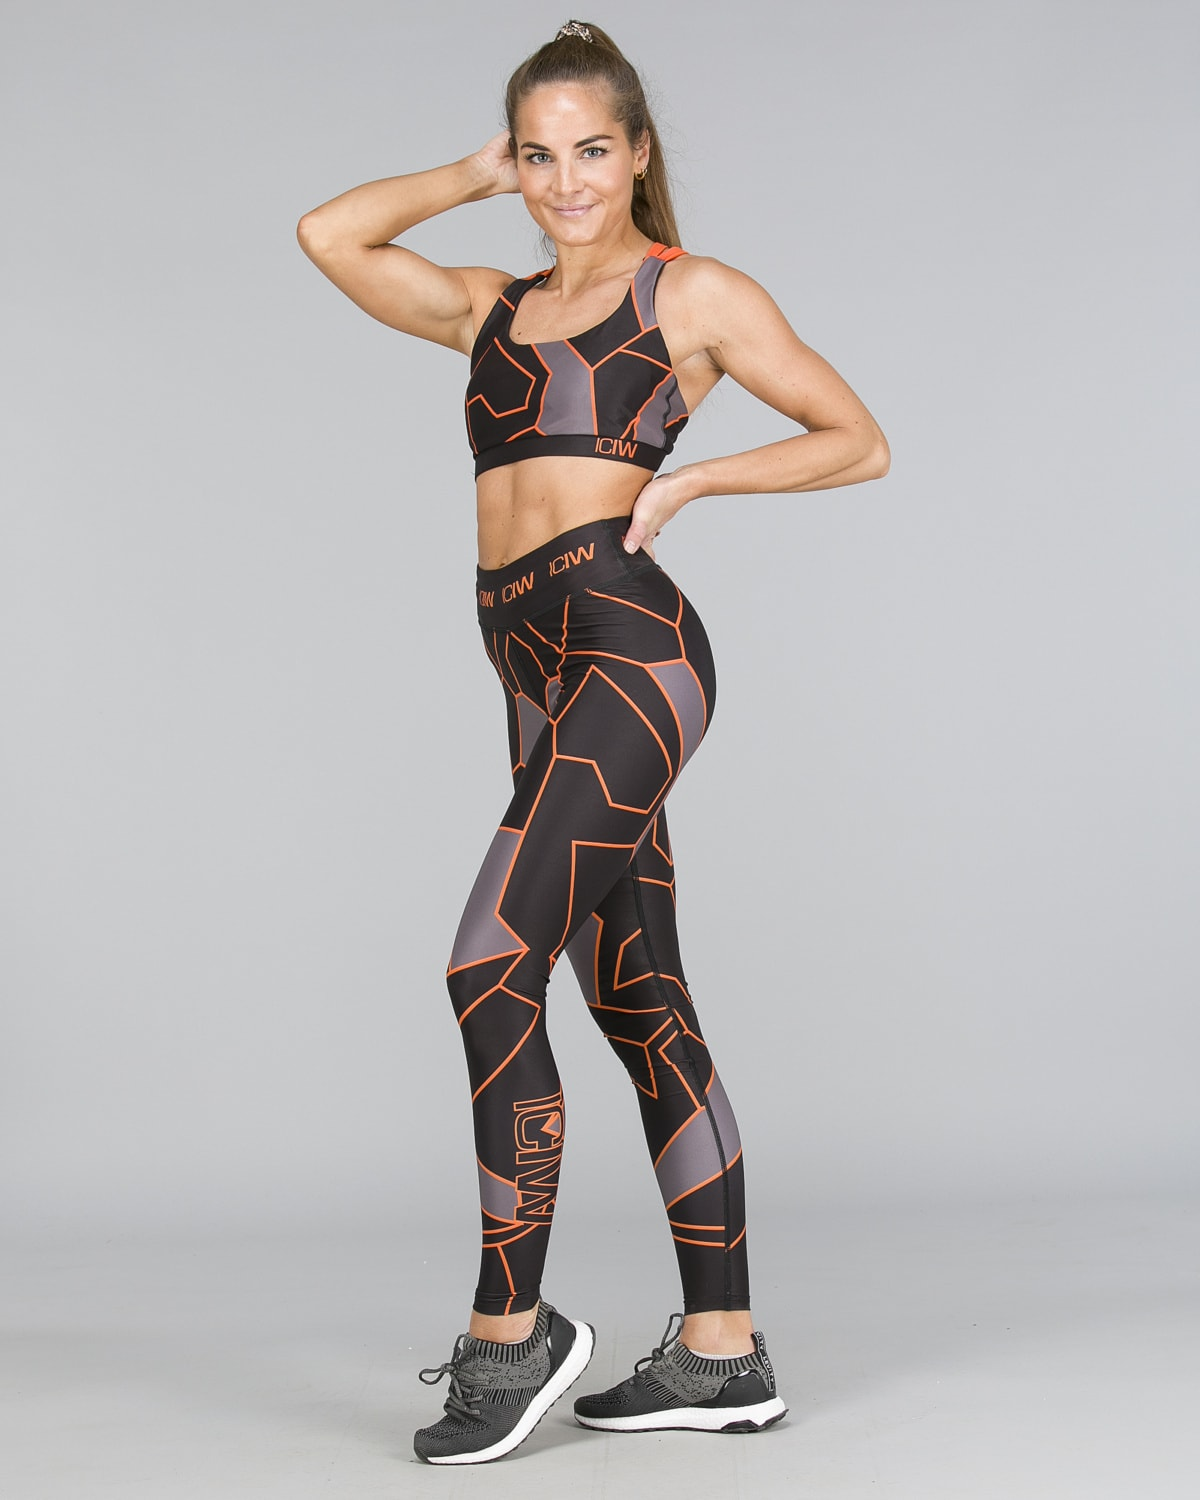 ICANIWILL – Orange Camo Tights h